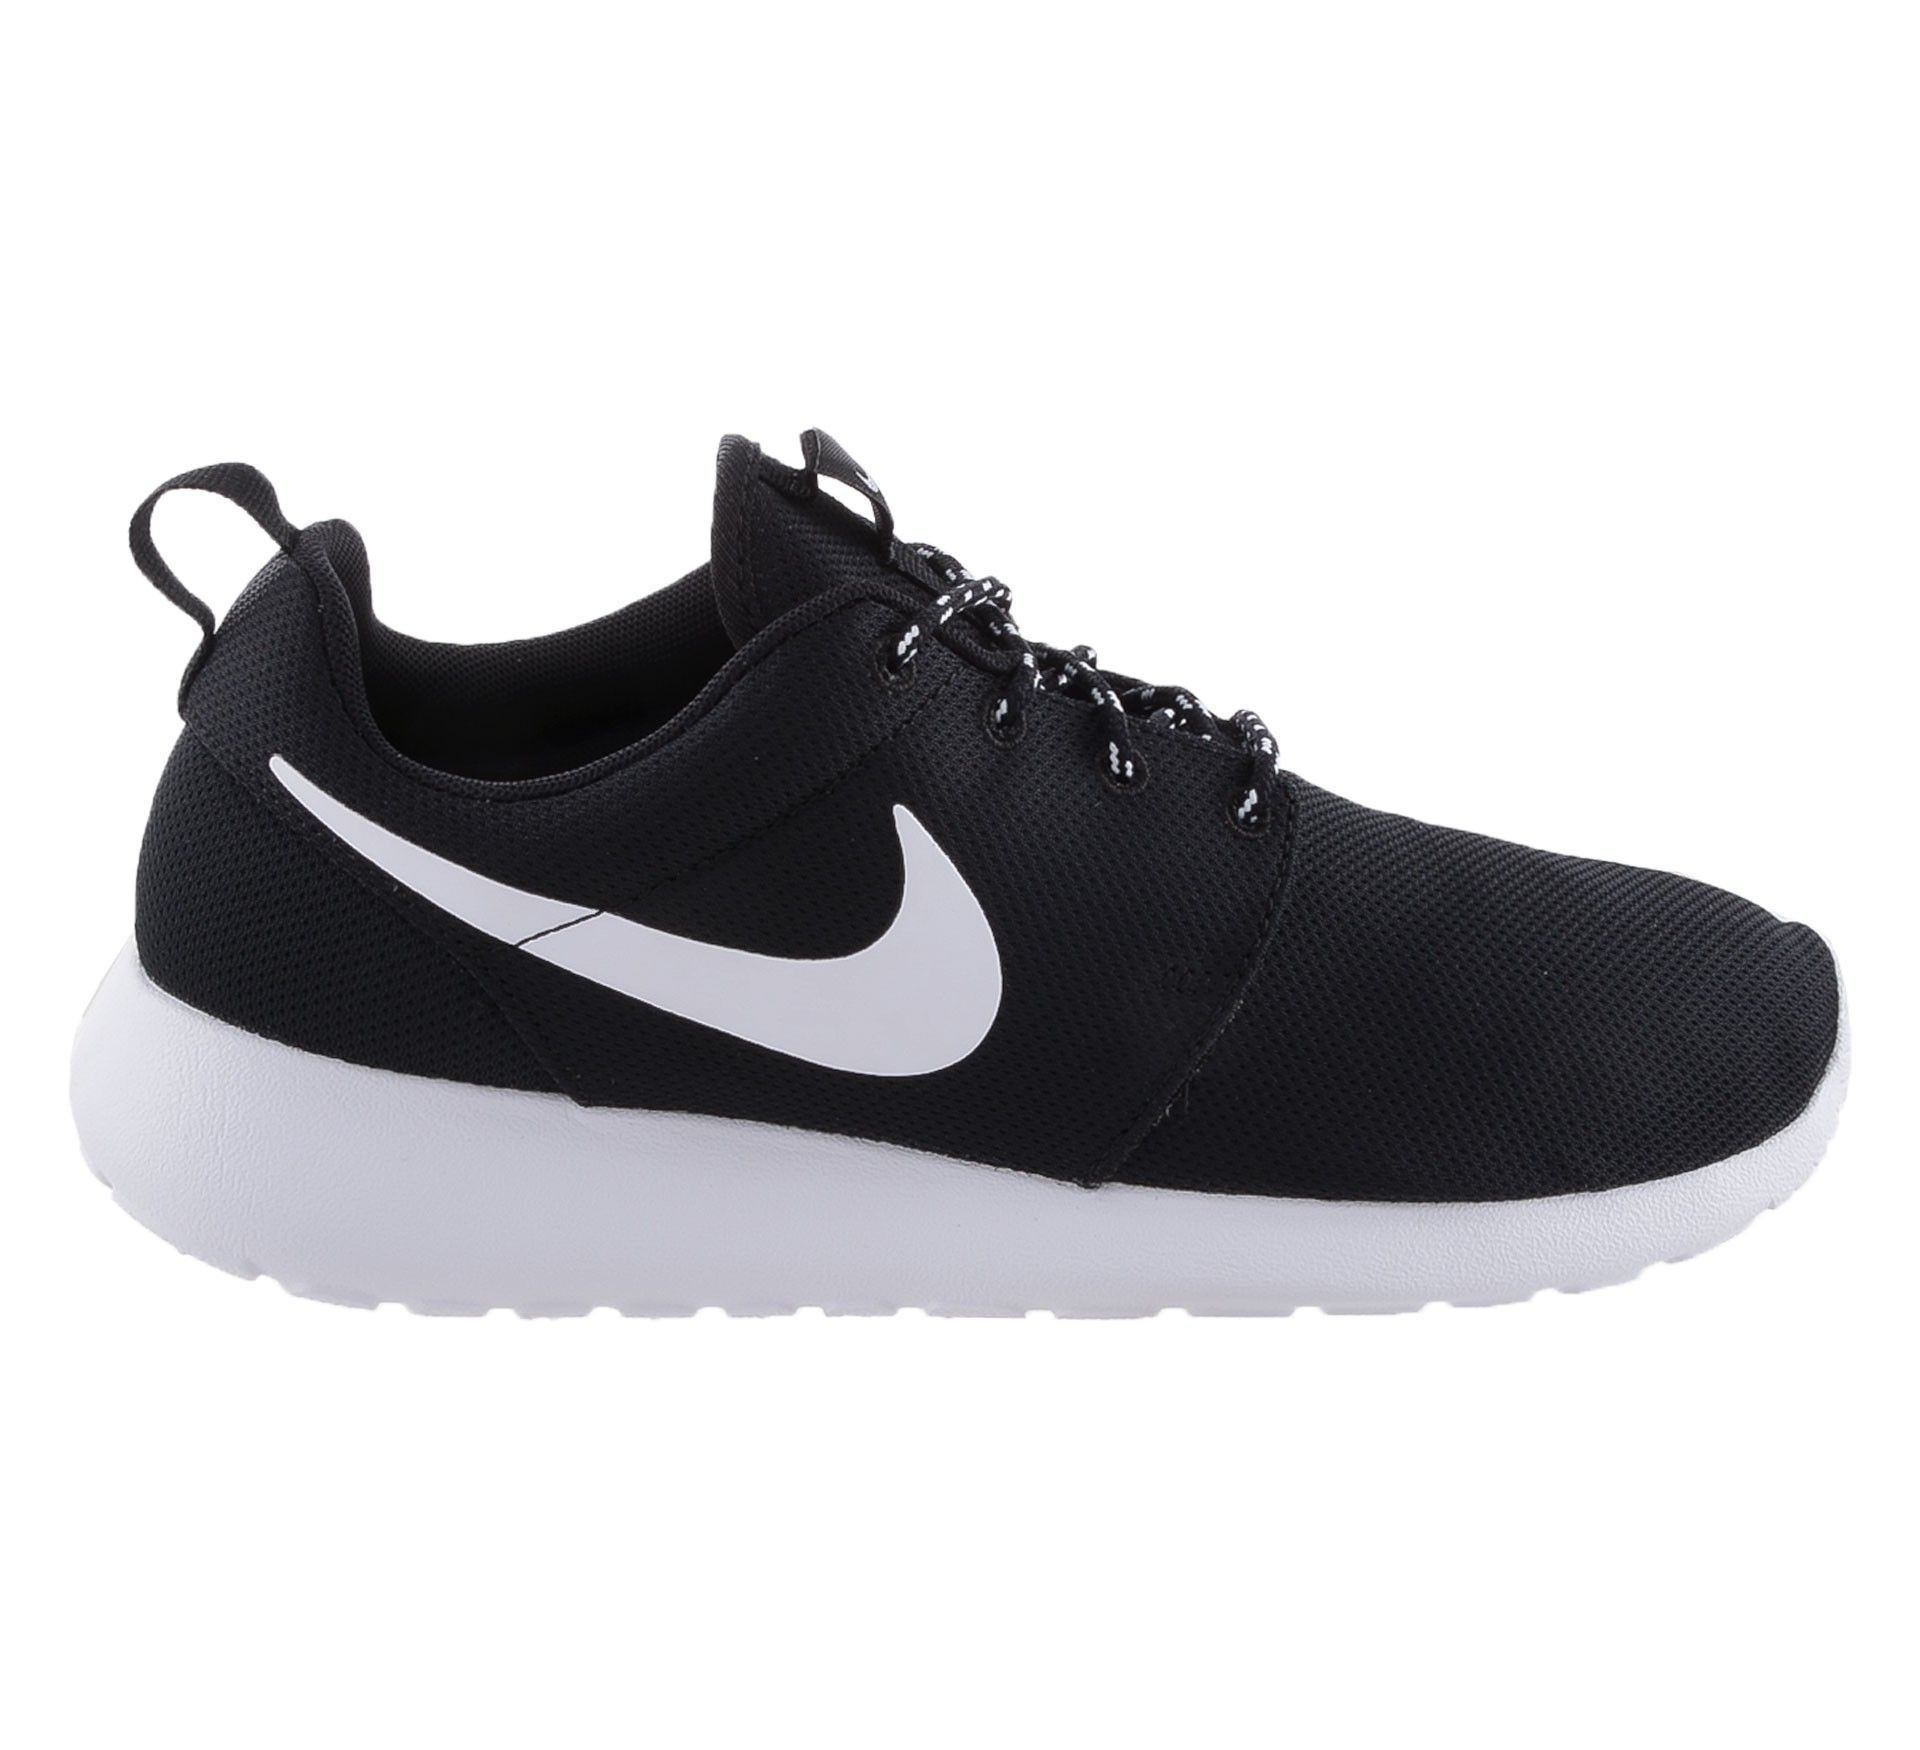 superior quality 5edb7 abf16 Nike Roshe Run Sneakers Dames Zwart Wit Online Kopen,HOT SALE!